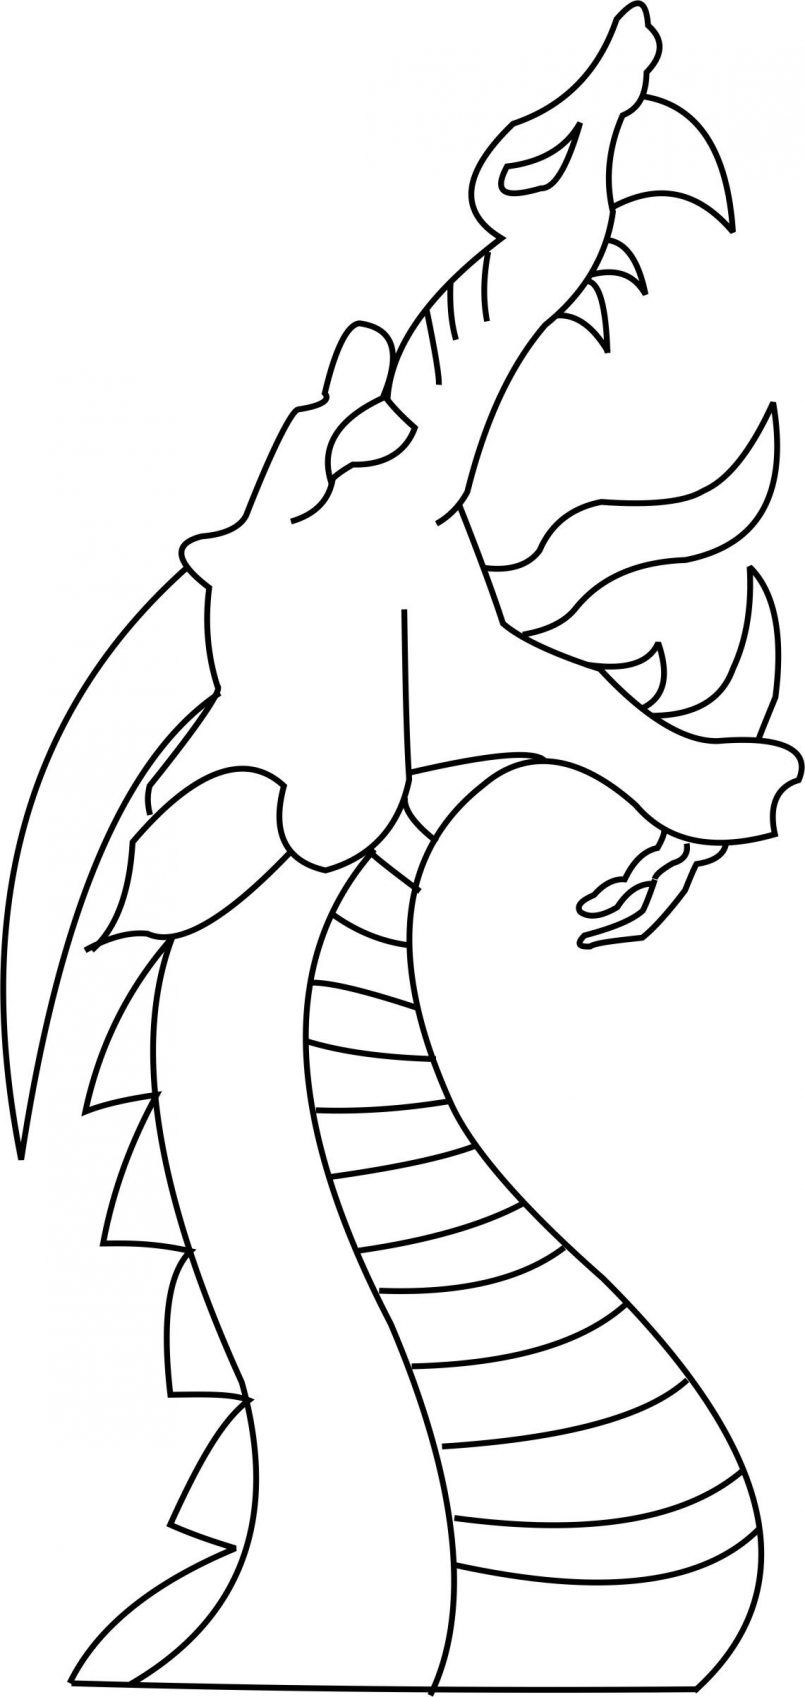 Drawing How To Draw A Cartoon Dragon For Beginners In Conjunction With How To Draw Cartoons Dragon Art Easy Dragon Drawings Dragon Head Drawing Dragon Drawing